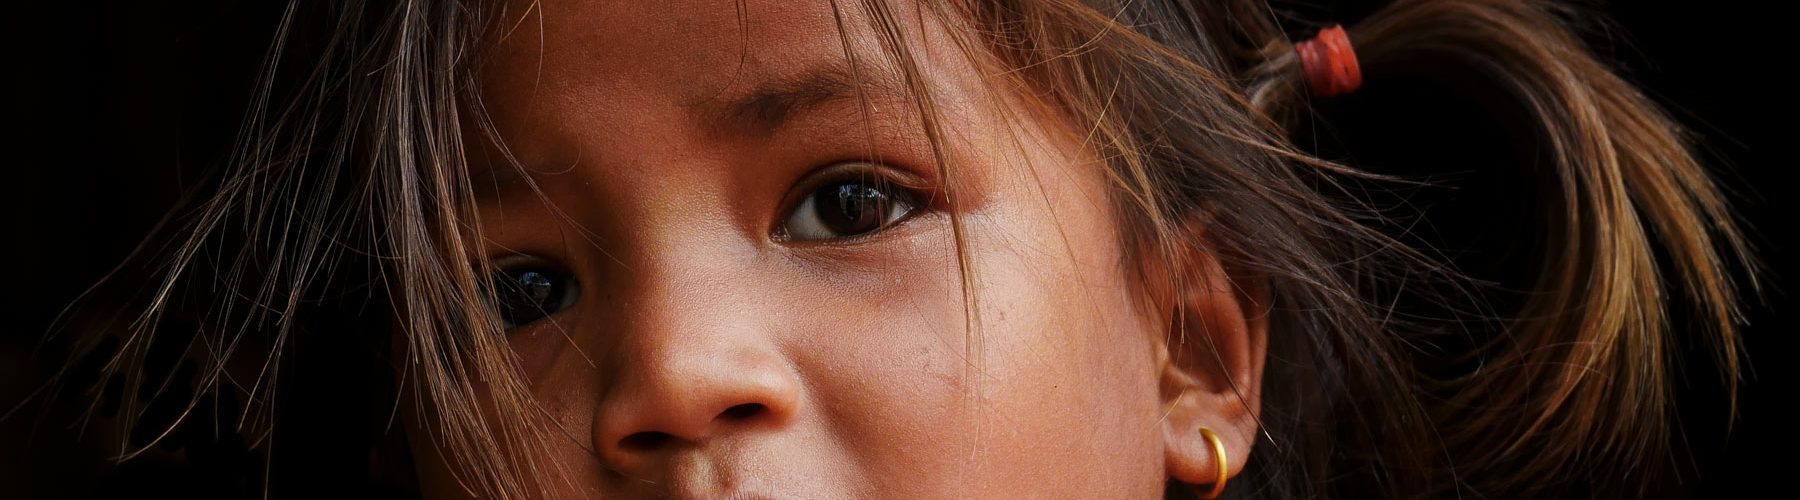 Young and pretty child from the Cambodian countryside with black eyes and earring in Kratie Province. Photography by Julien Thomas.